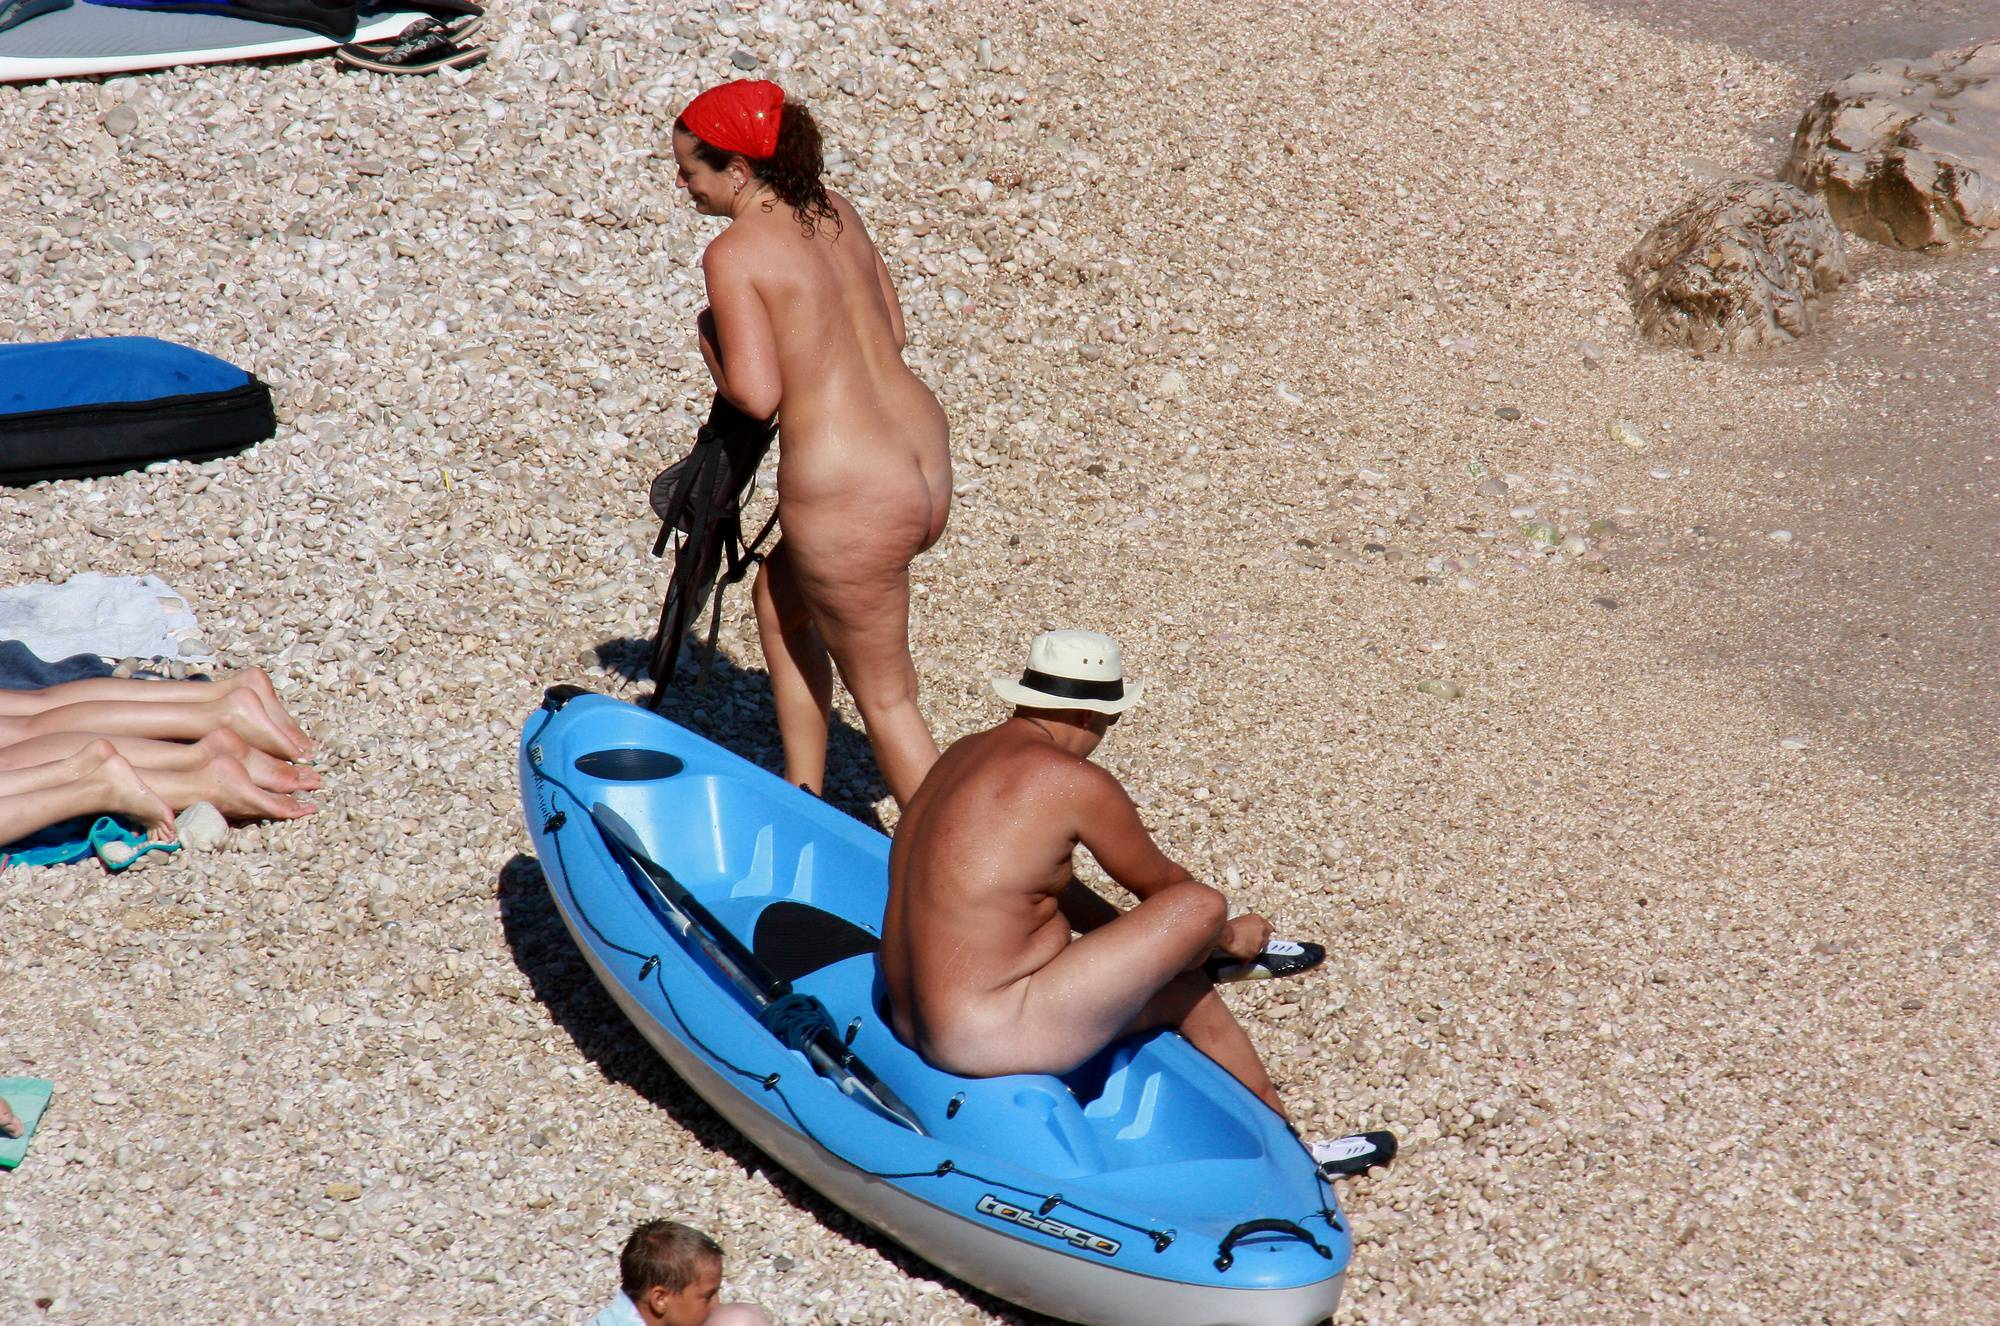 Pure Nudism Pics Get In Waters for Boating - 4